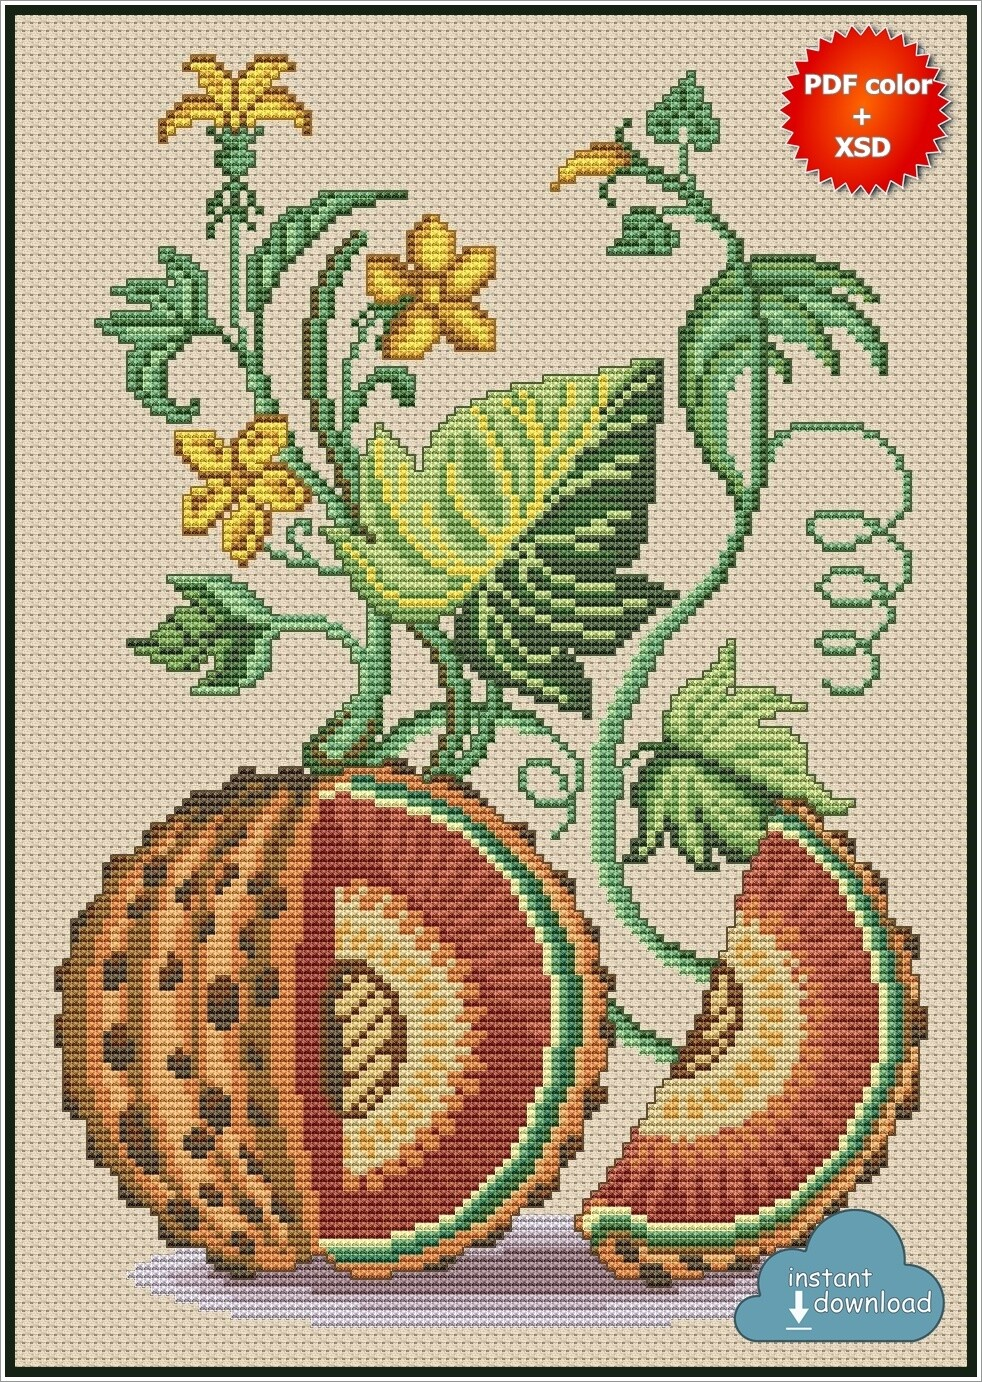 Squash Cross Stitch Pattern PDF + XSD. Instant Download. Only 5 in stock!